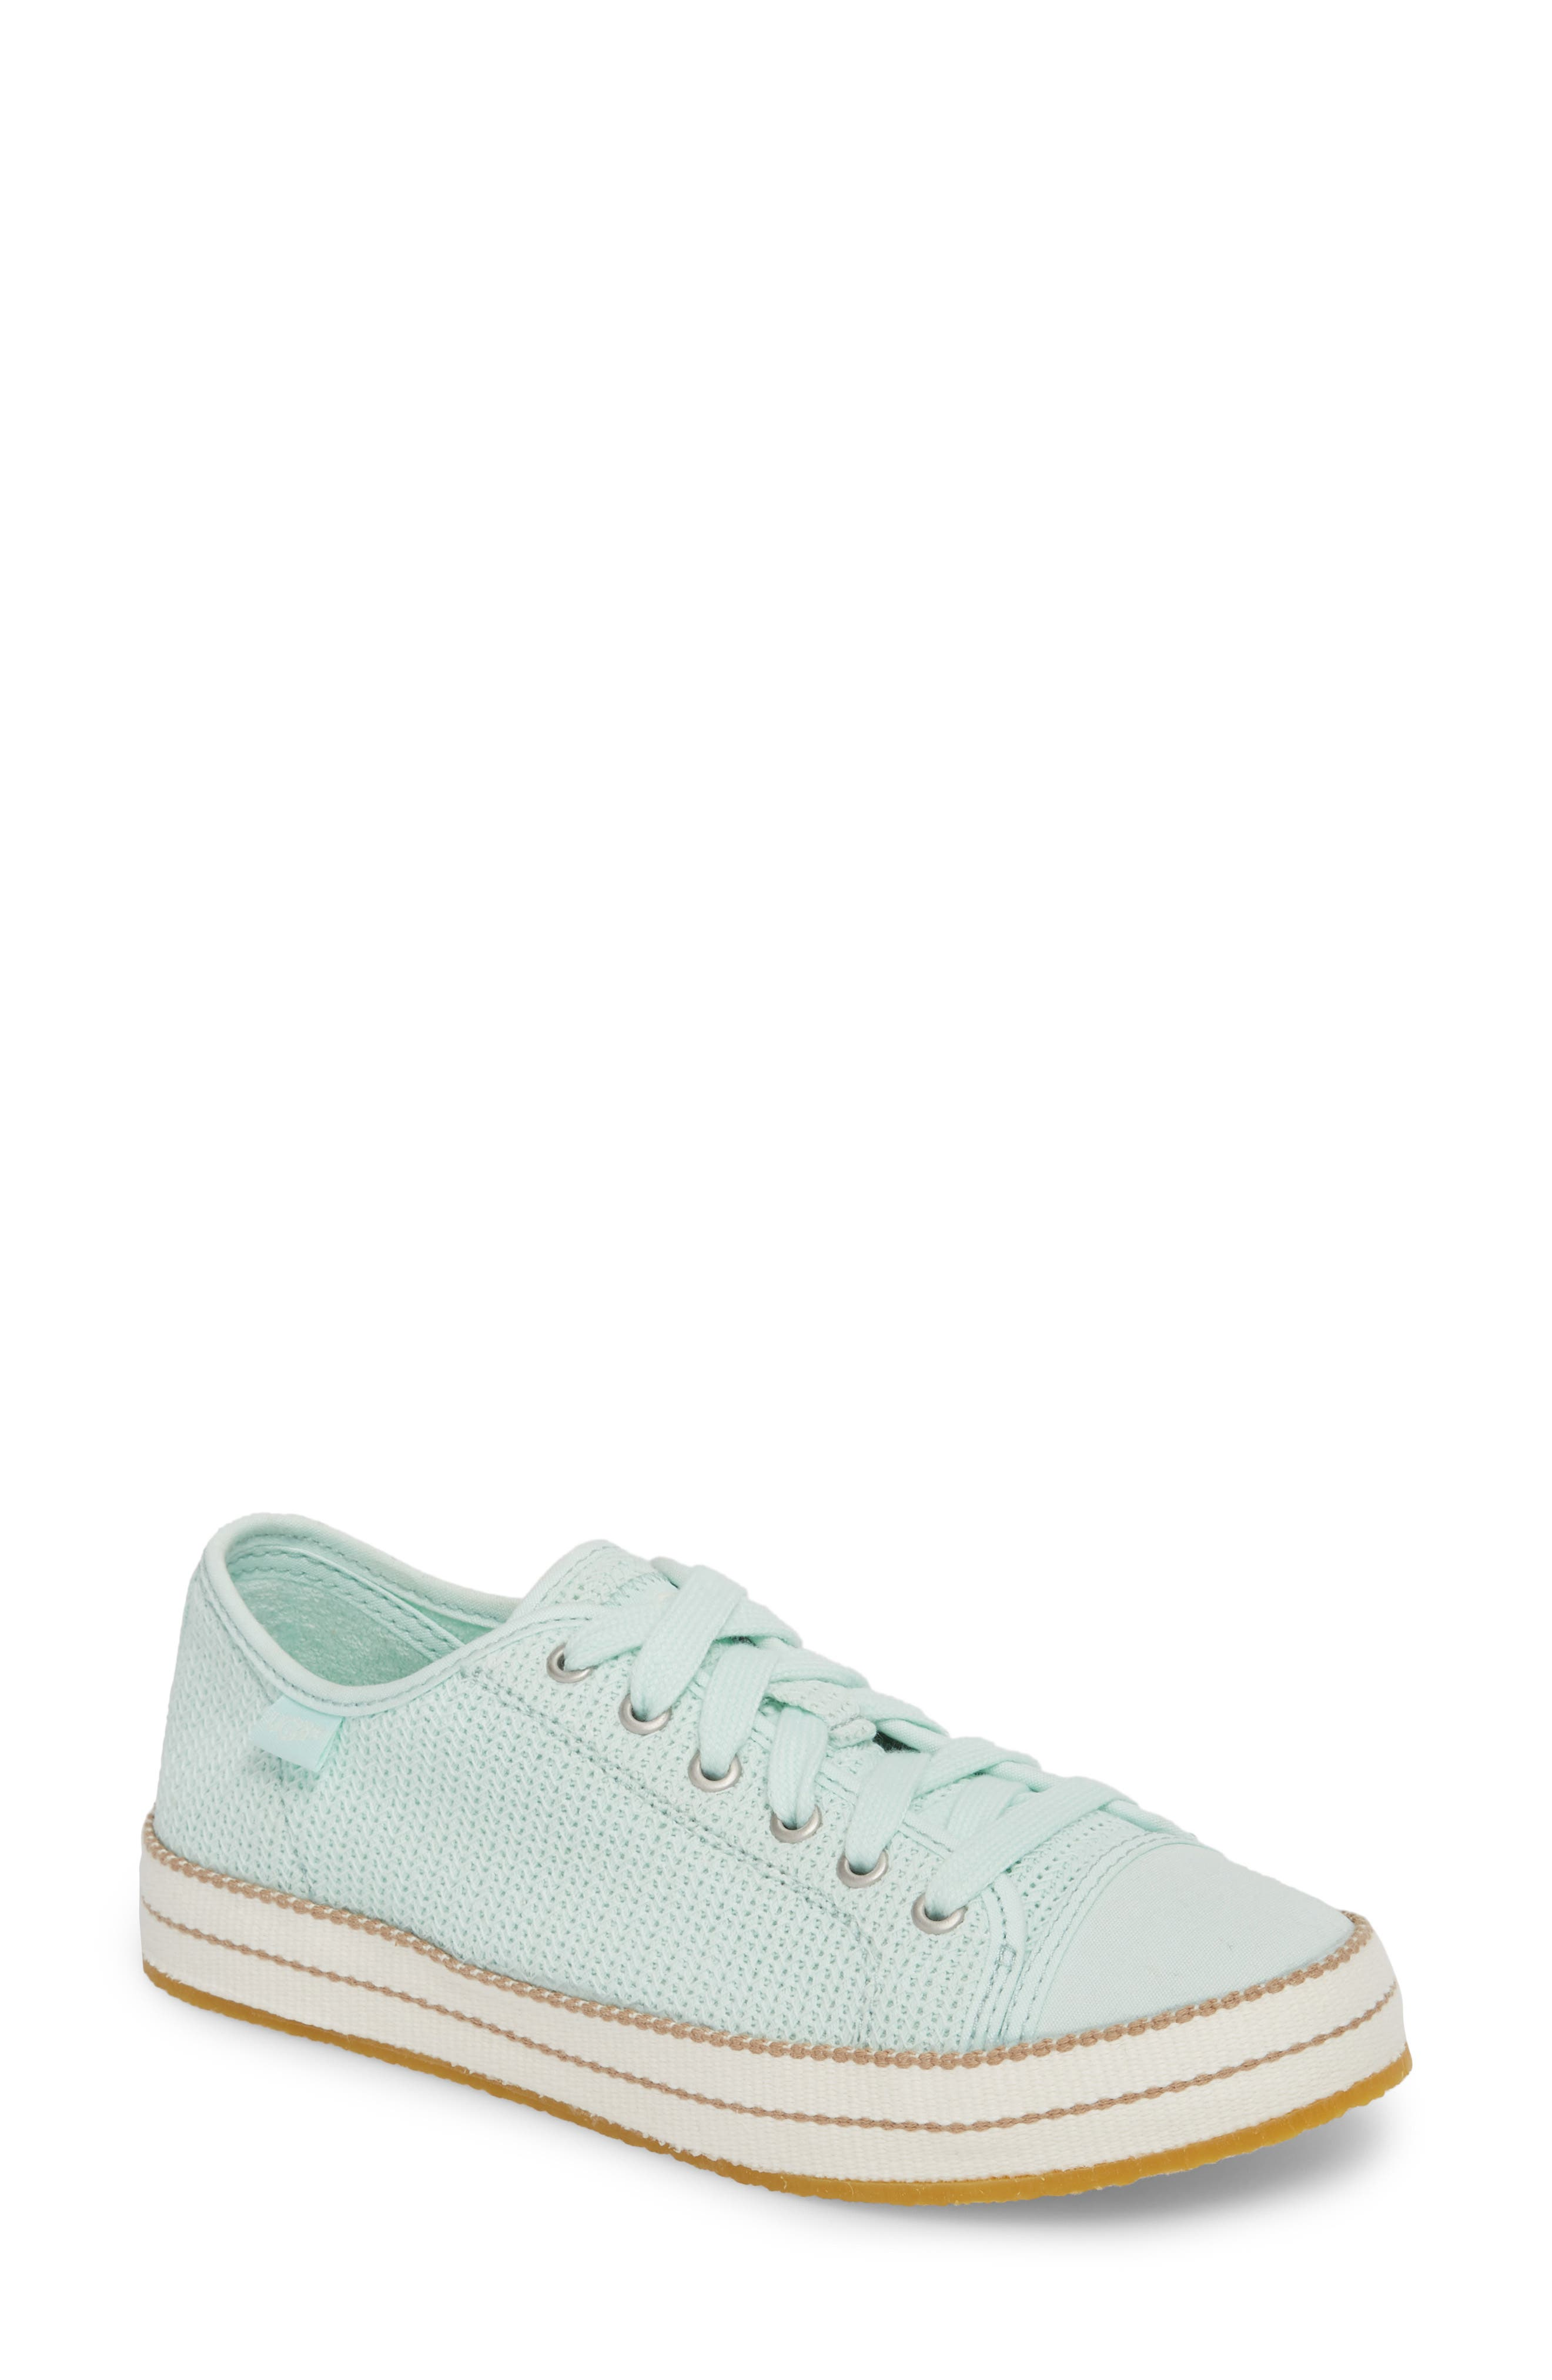 Claudi Sneaker,                             Main thumbnail 1, color,                             Aqua